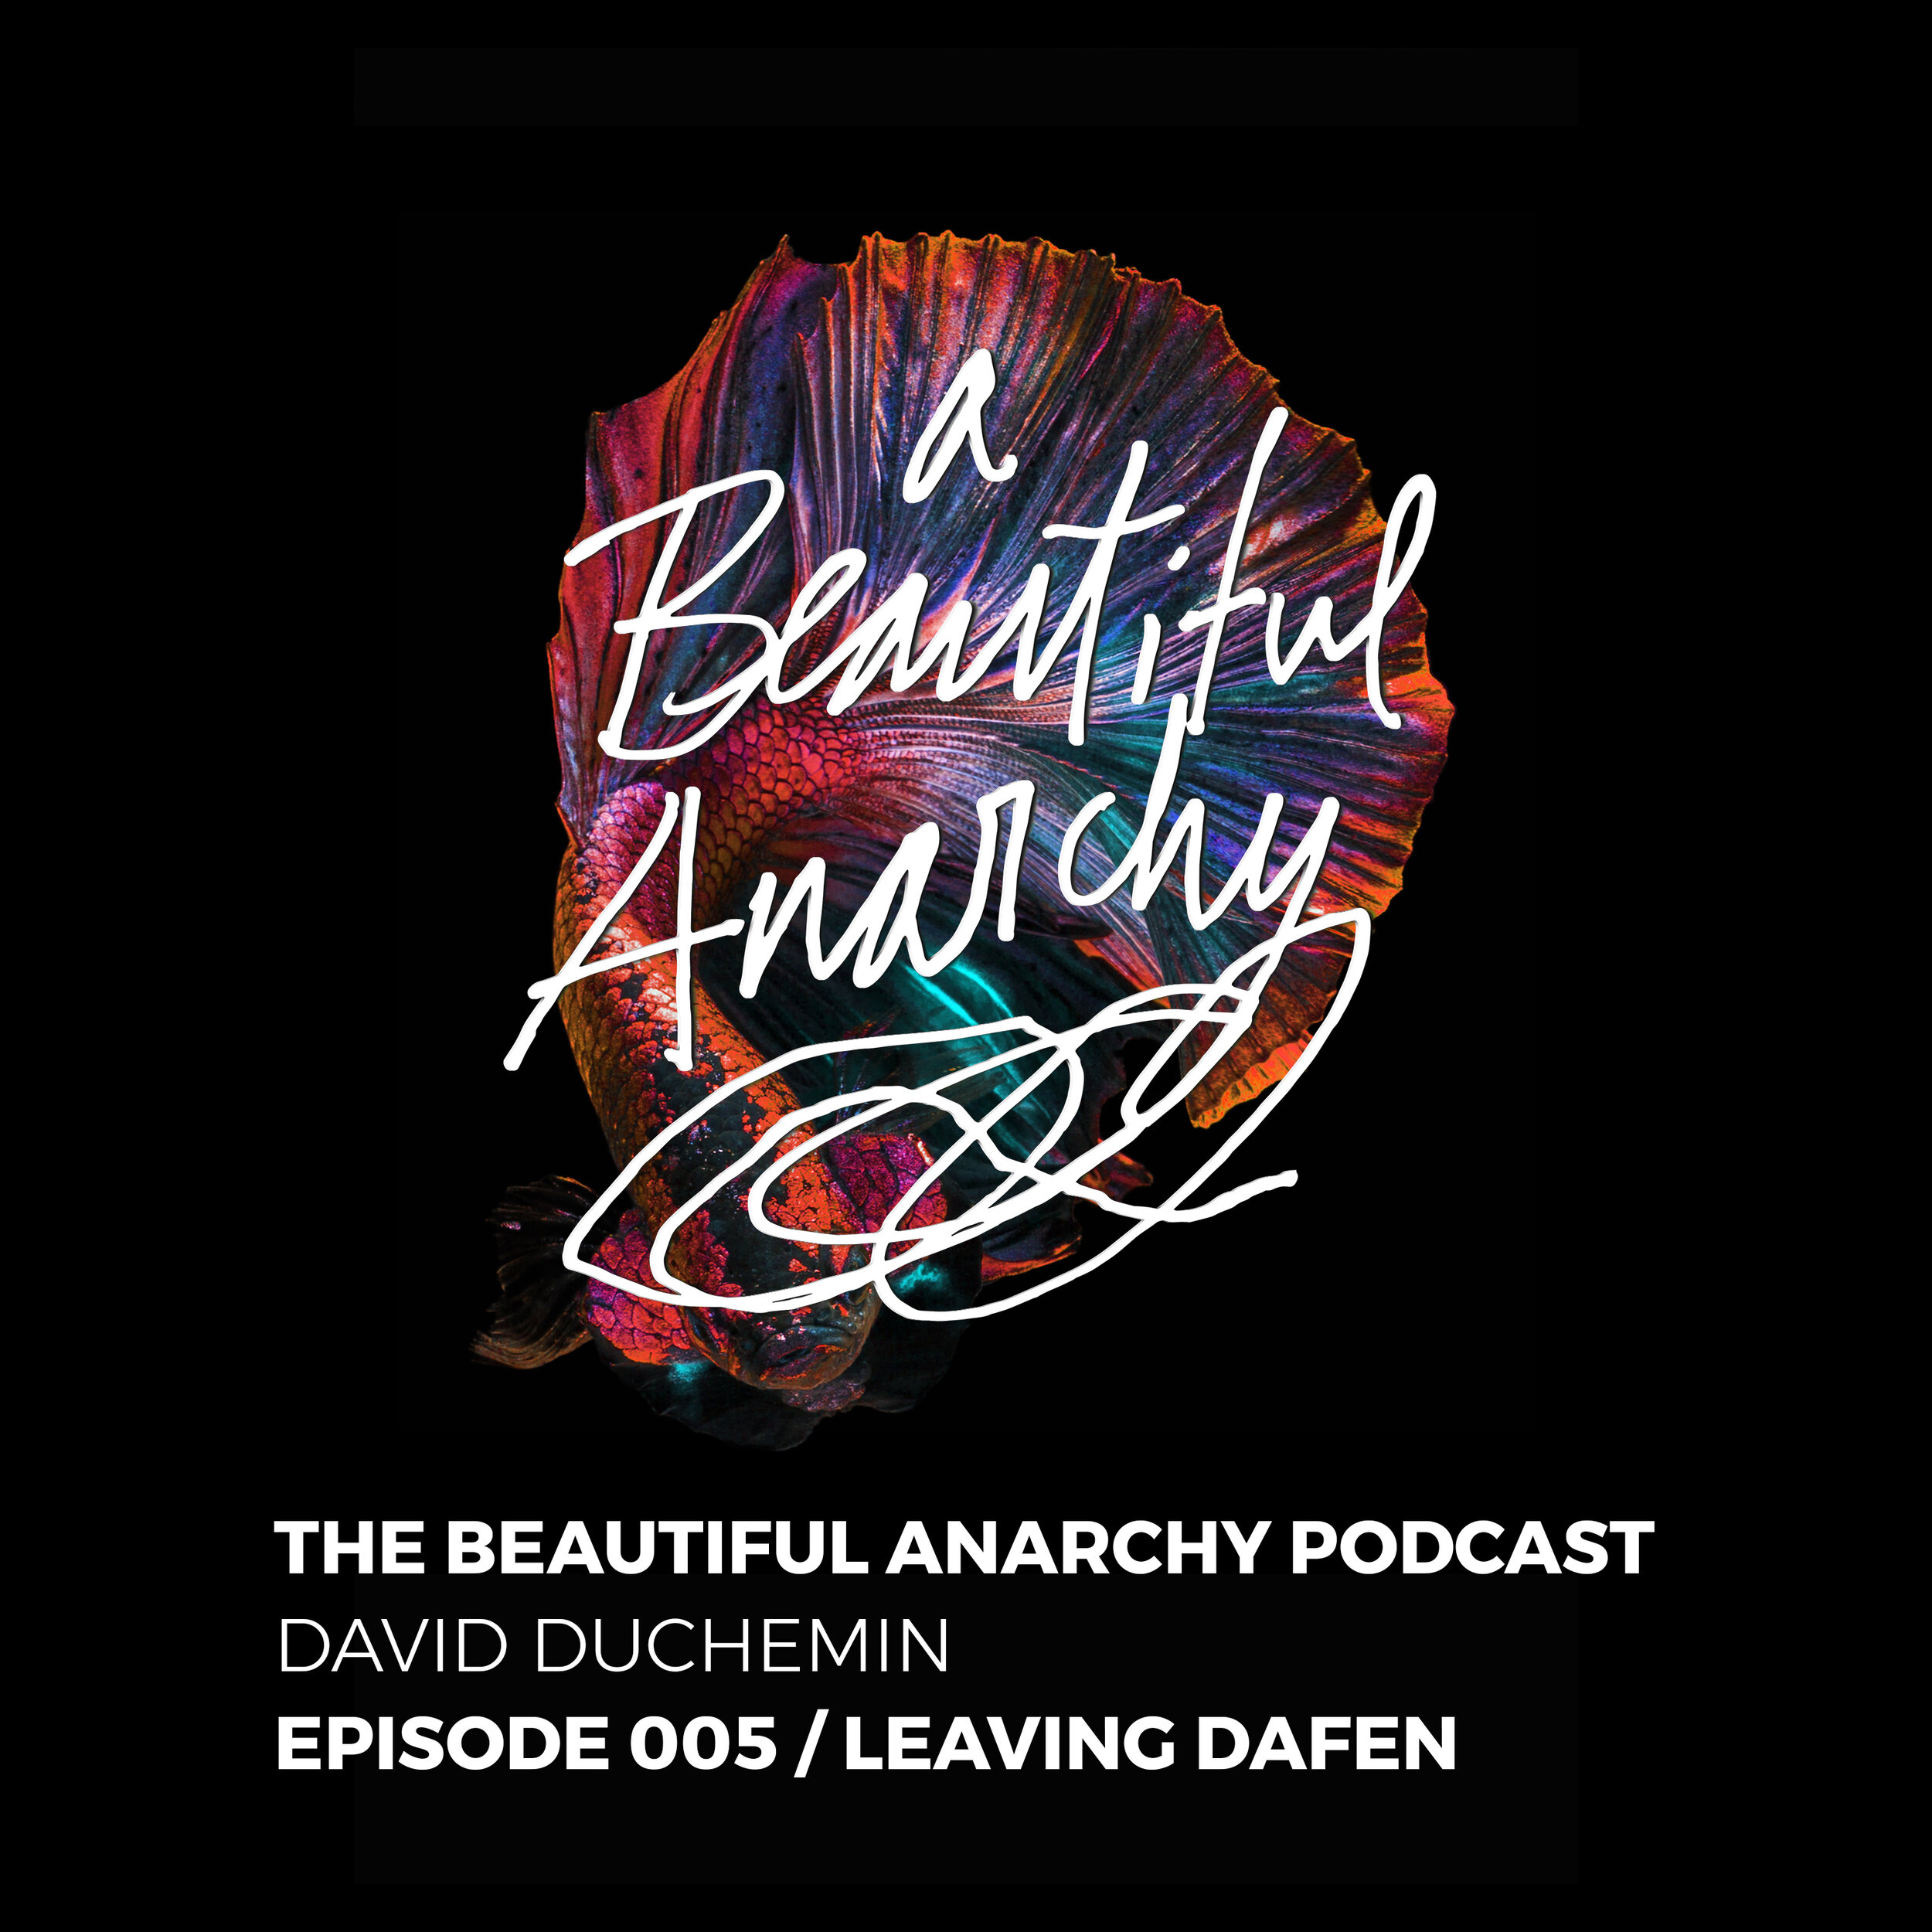 EPISODE 005:LEAVING DAFEN - There is a village in China where thousands of painters make their living together, painting away their days in spartan studios, covered in paint, surrounded by canvases. The village is called Dafen, and it intrigues me because, for all the technical prowess possessed by the painters in that community, it is not known for its art. Not really. That is to say it's not known for its own art. It's known for being the world's largest source of counterfeits and copies of art. Want a Mona Lisa but don't have the 500 million it might cost you? You can get one in Dafen for a handful of dollars, relatively speaking. And it'll be a very good copy. But is it art, and was it made by an artist? And why does it matter? This is episode 5 of A Beautiful Anarchy, let's talk about it.